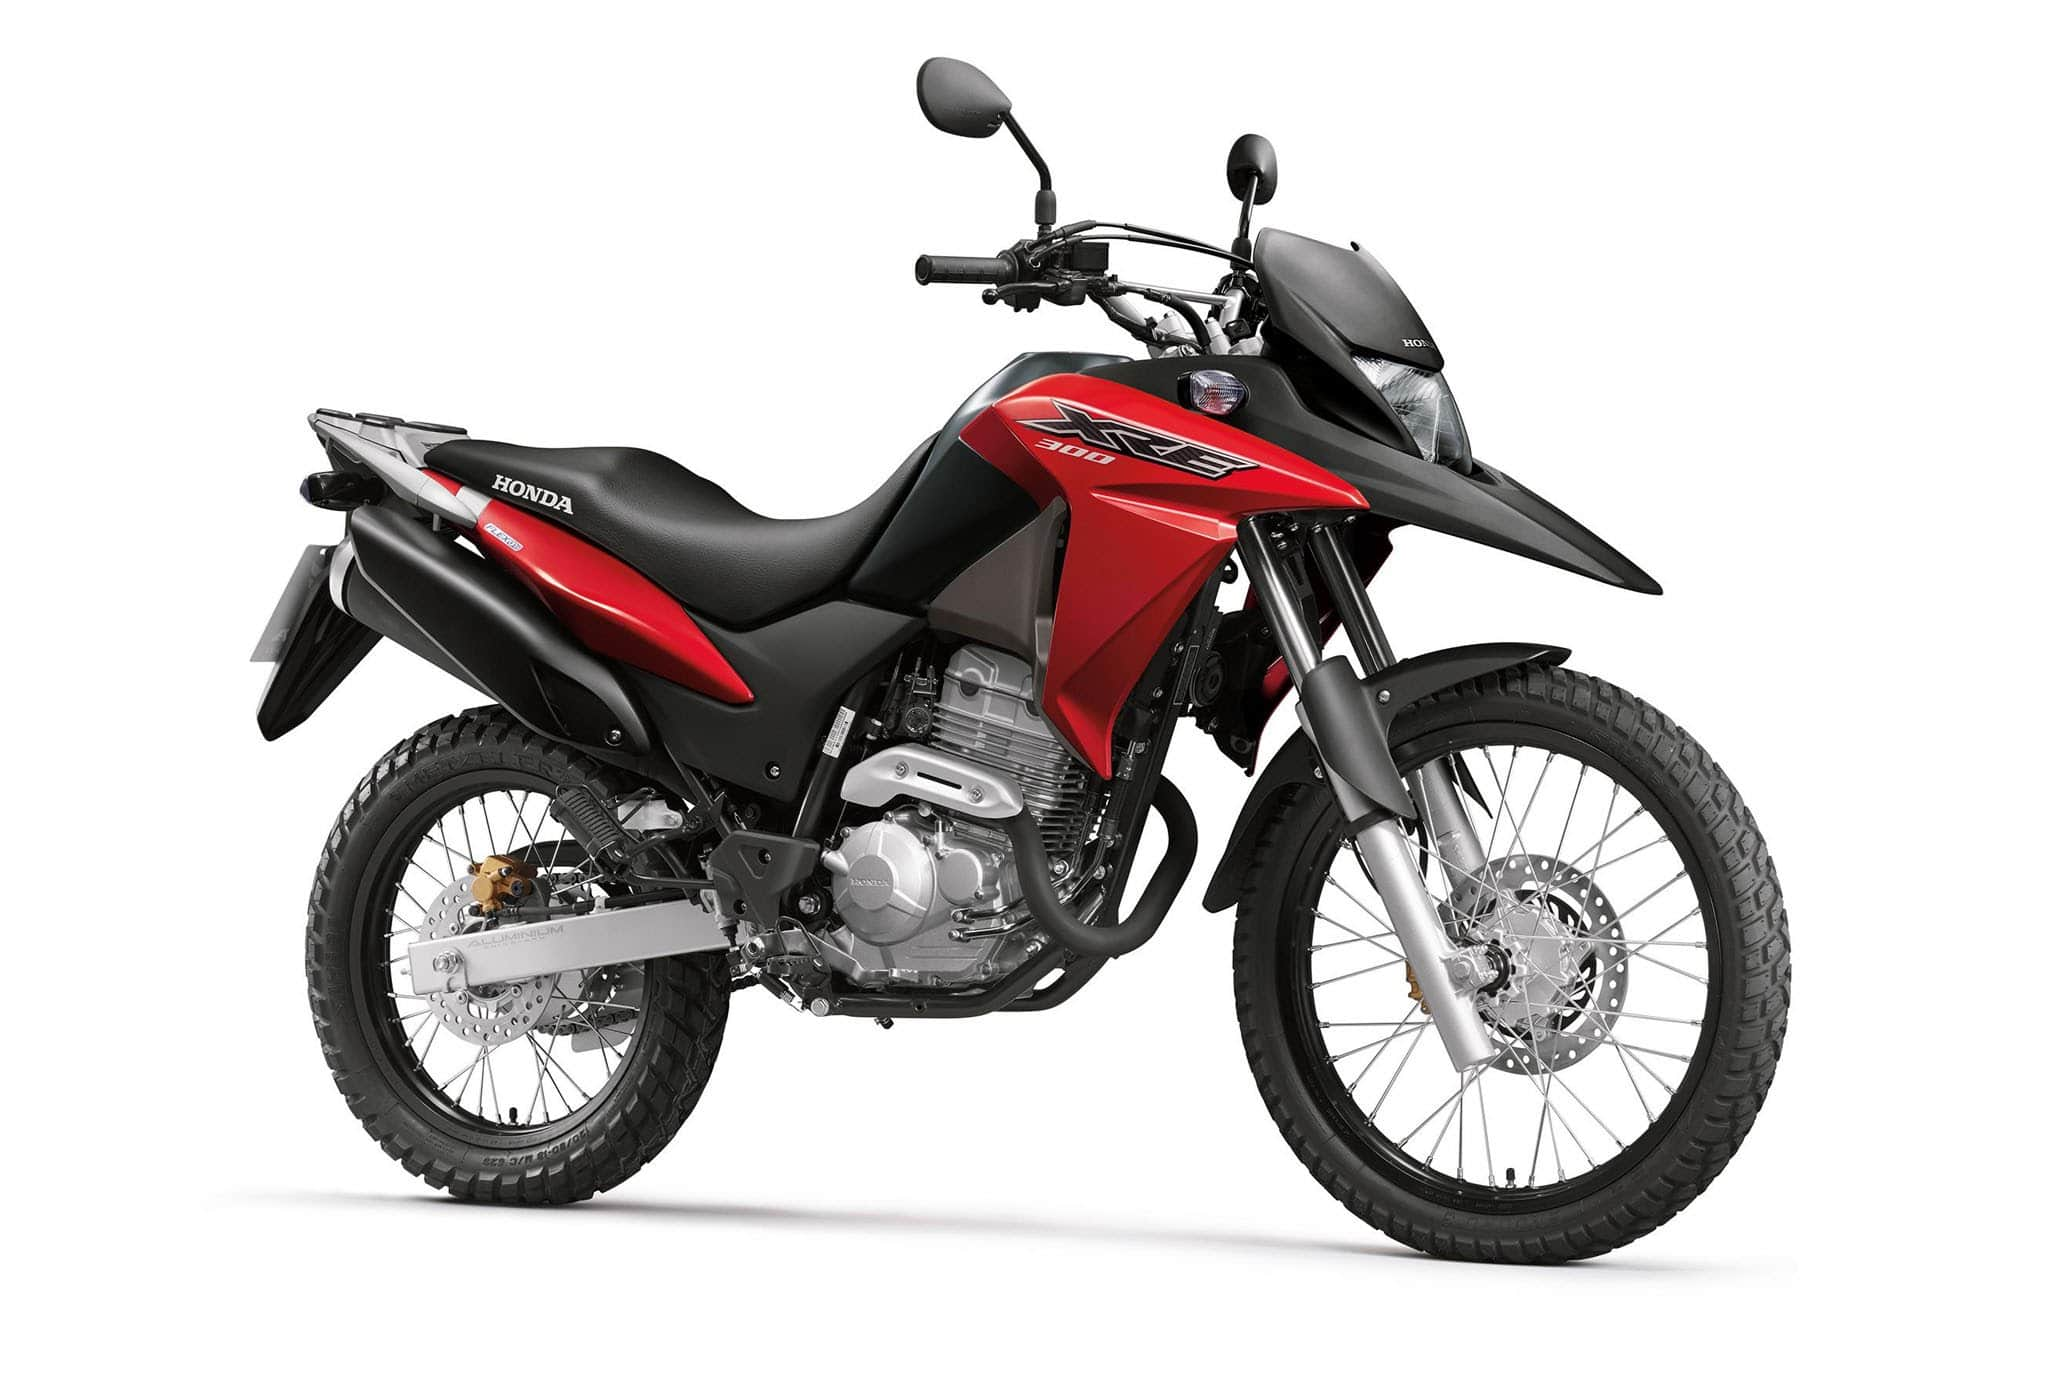 Honda XRE 300 Adventure Bike To Be Launched In India By